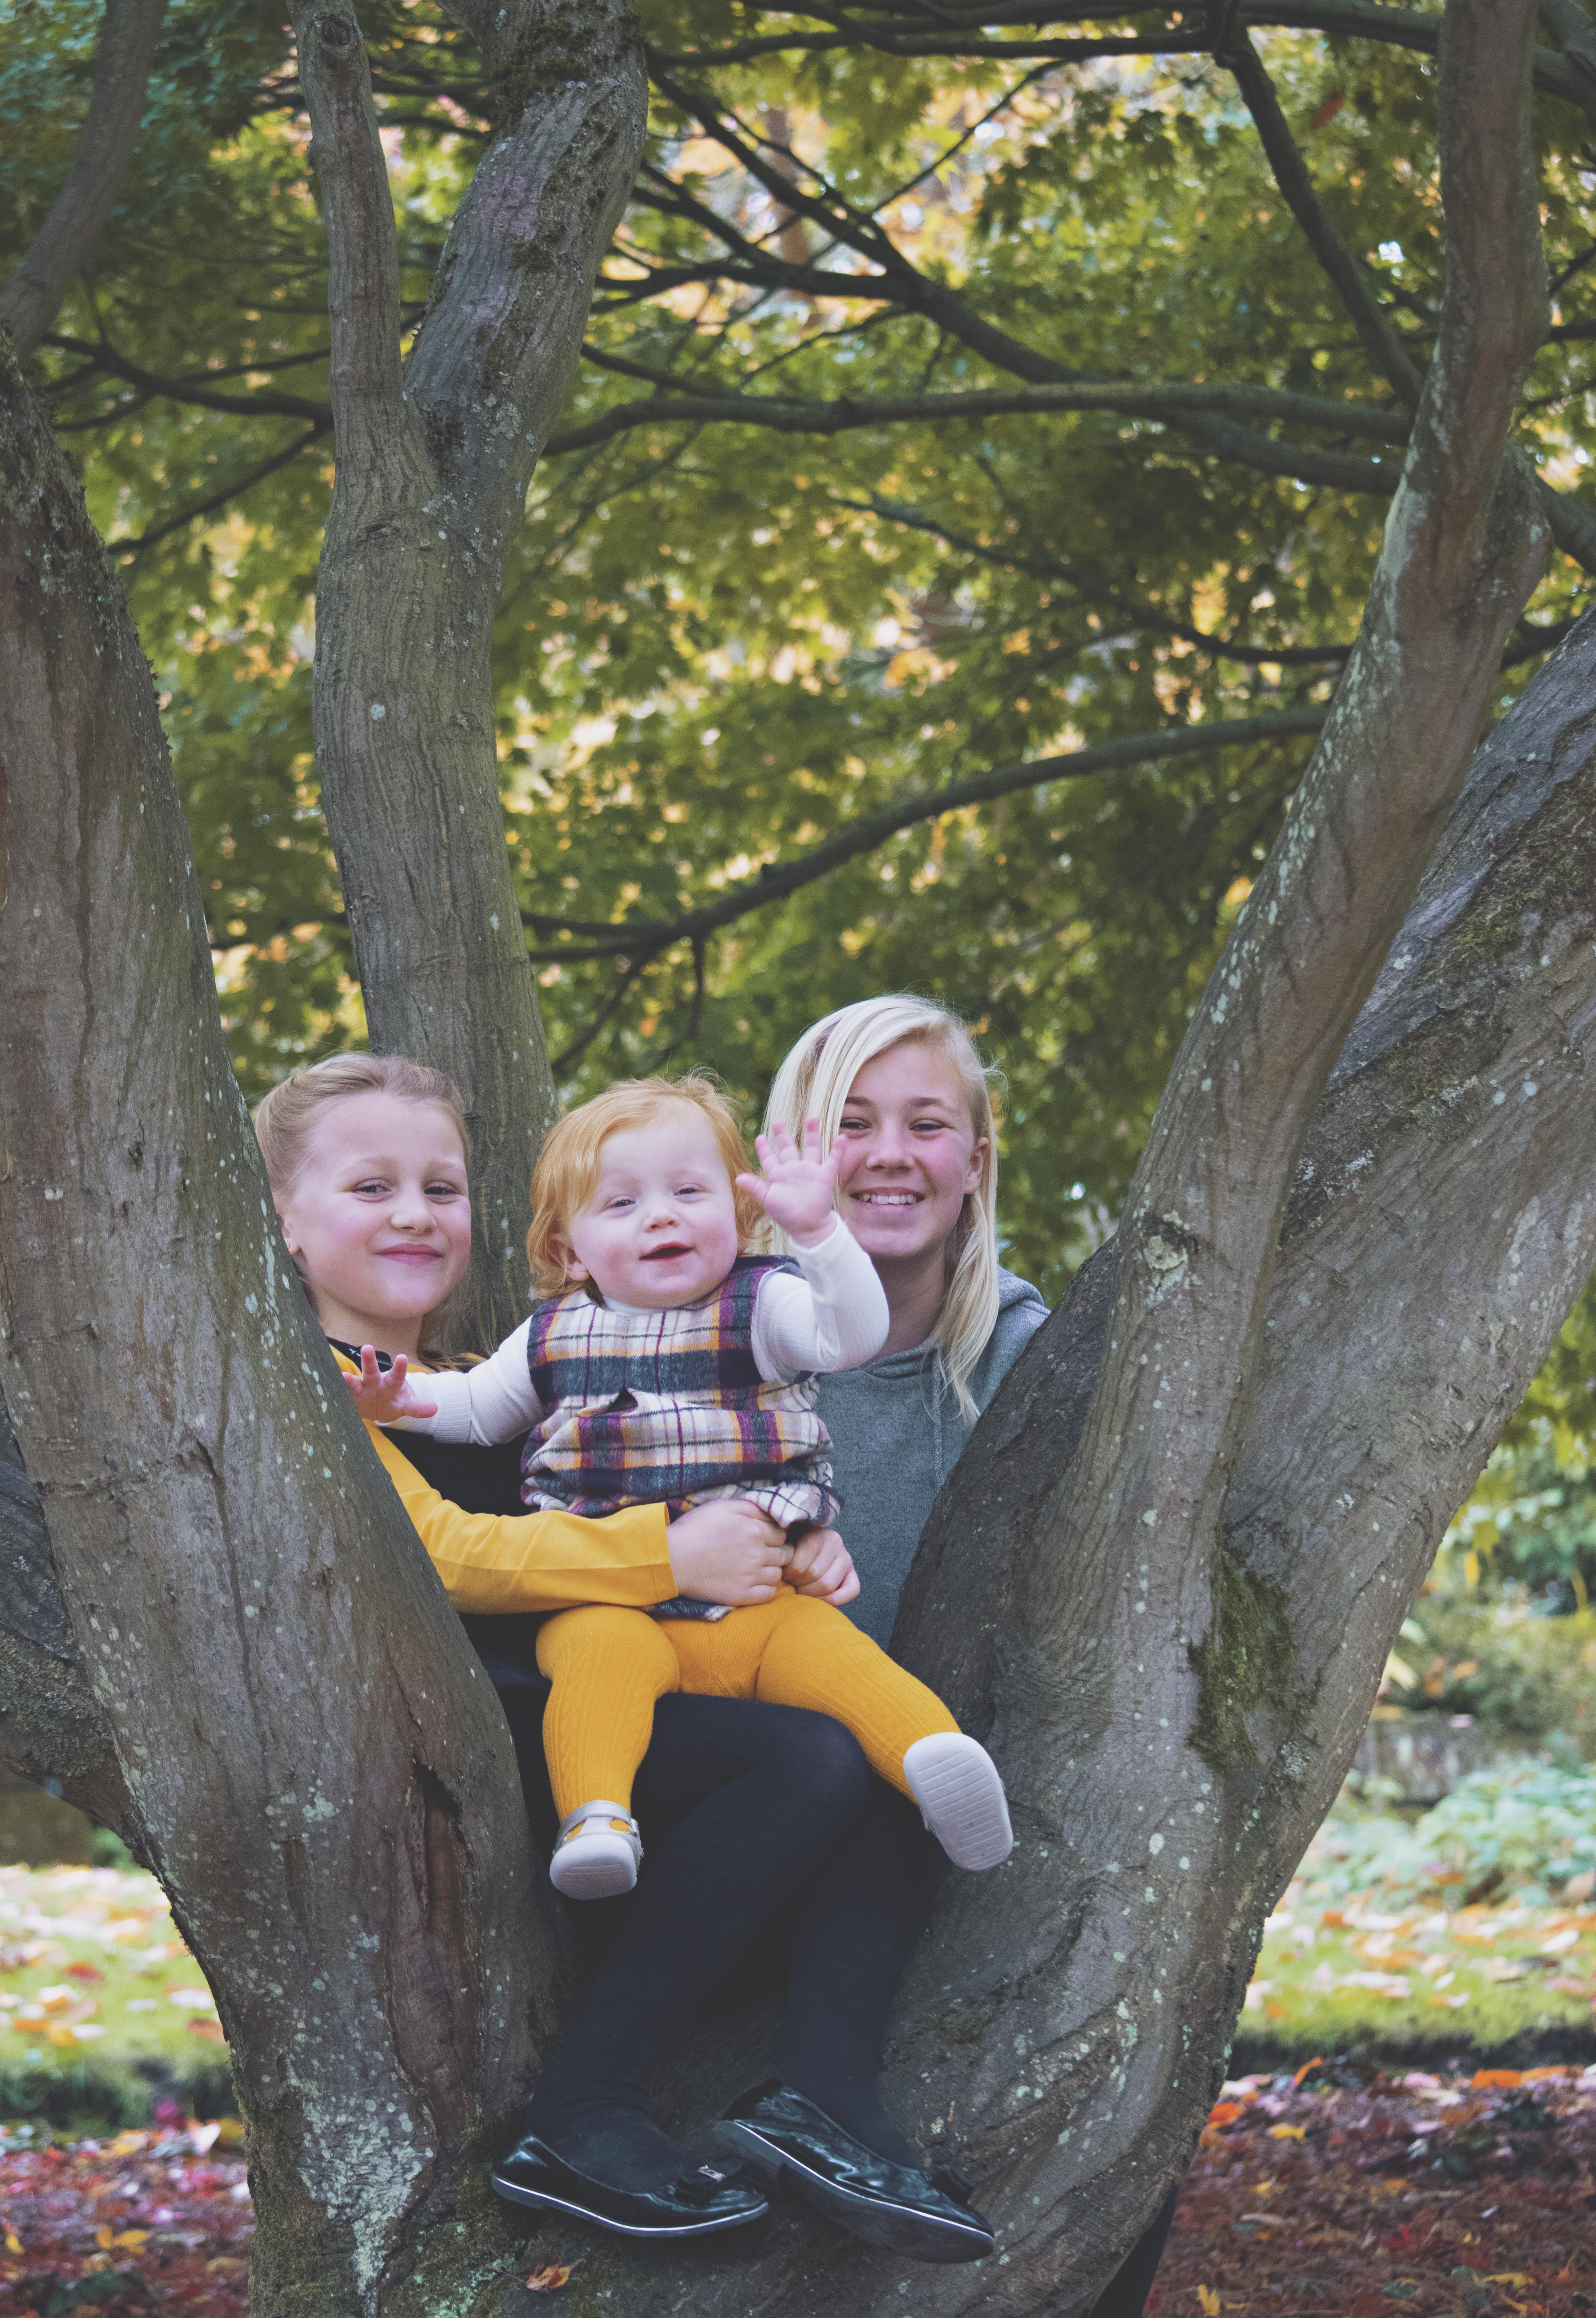 Family Photography at R.H.S Wisley Surrey